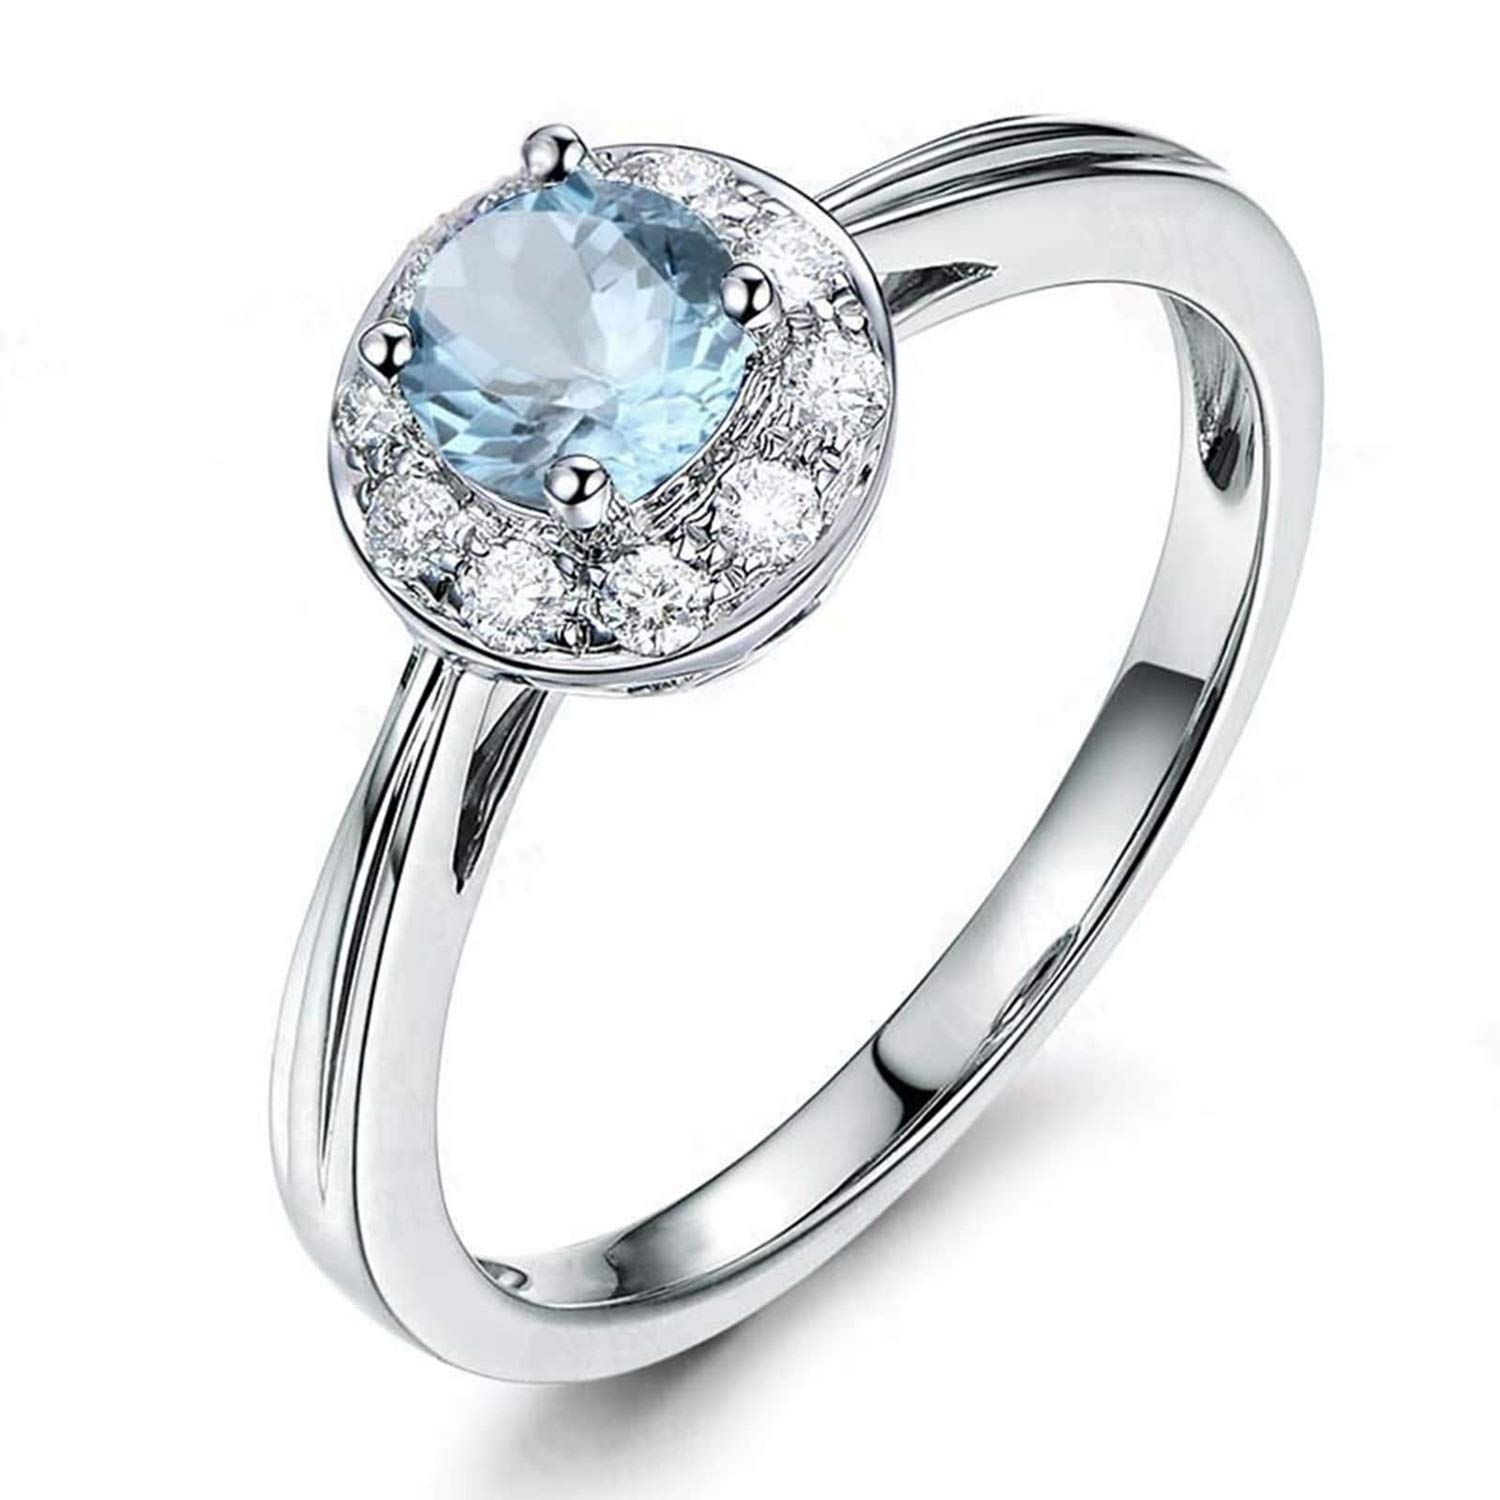 AMDXD Jewellery 925 Sterling Silver Anniversary Ring for Women Round Cut Topaz Round Rings